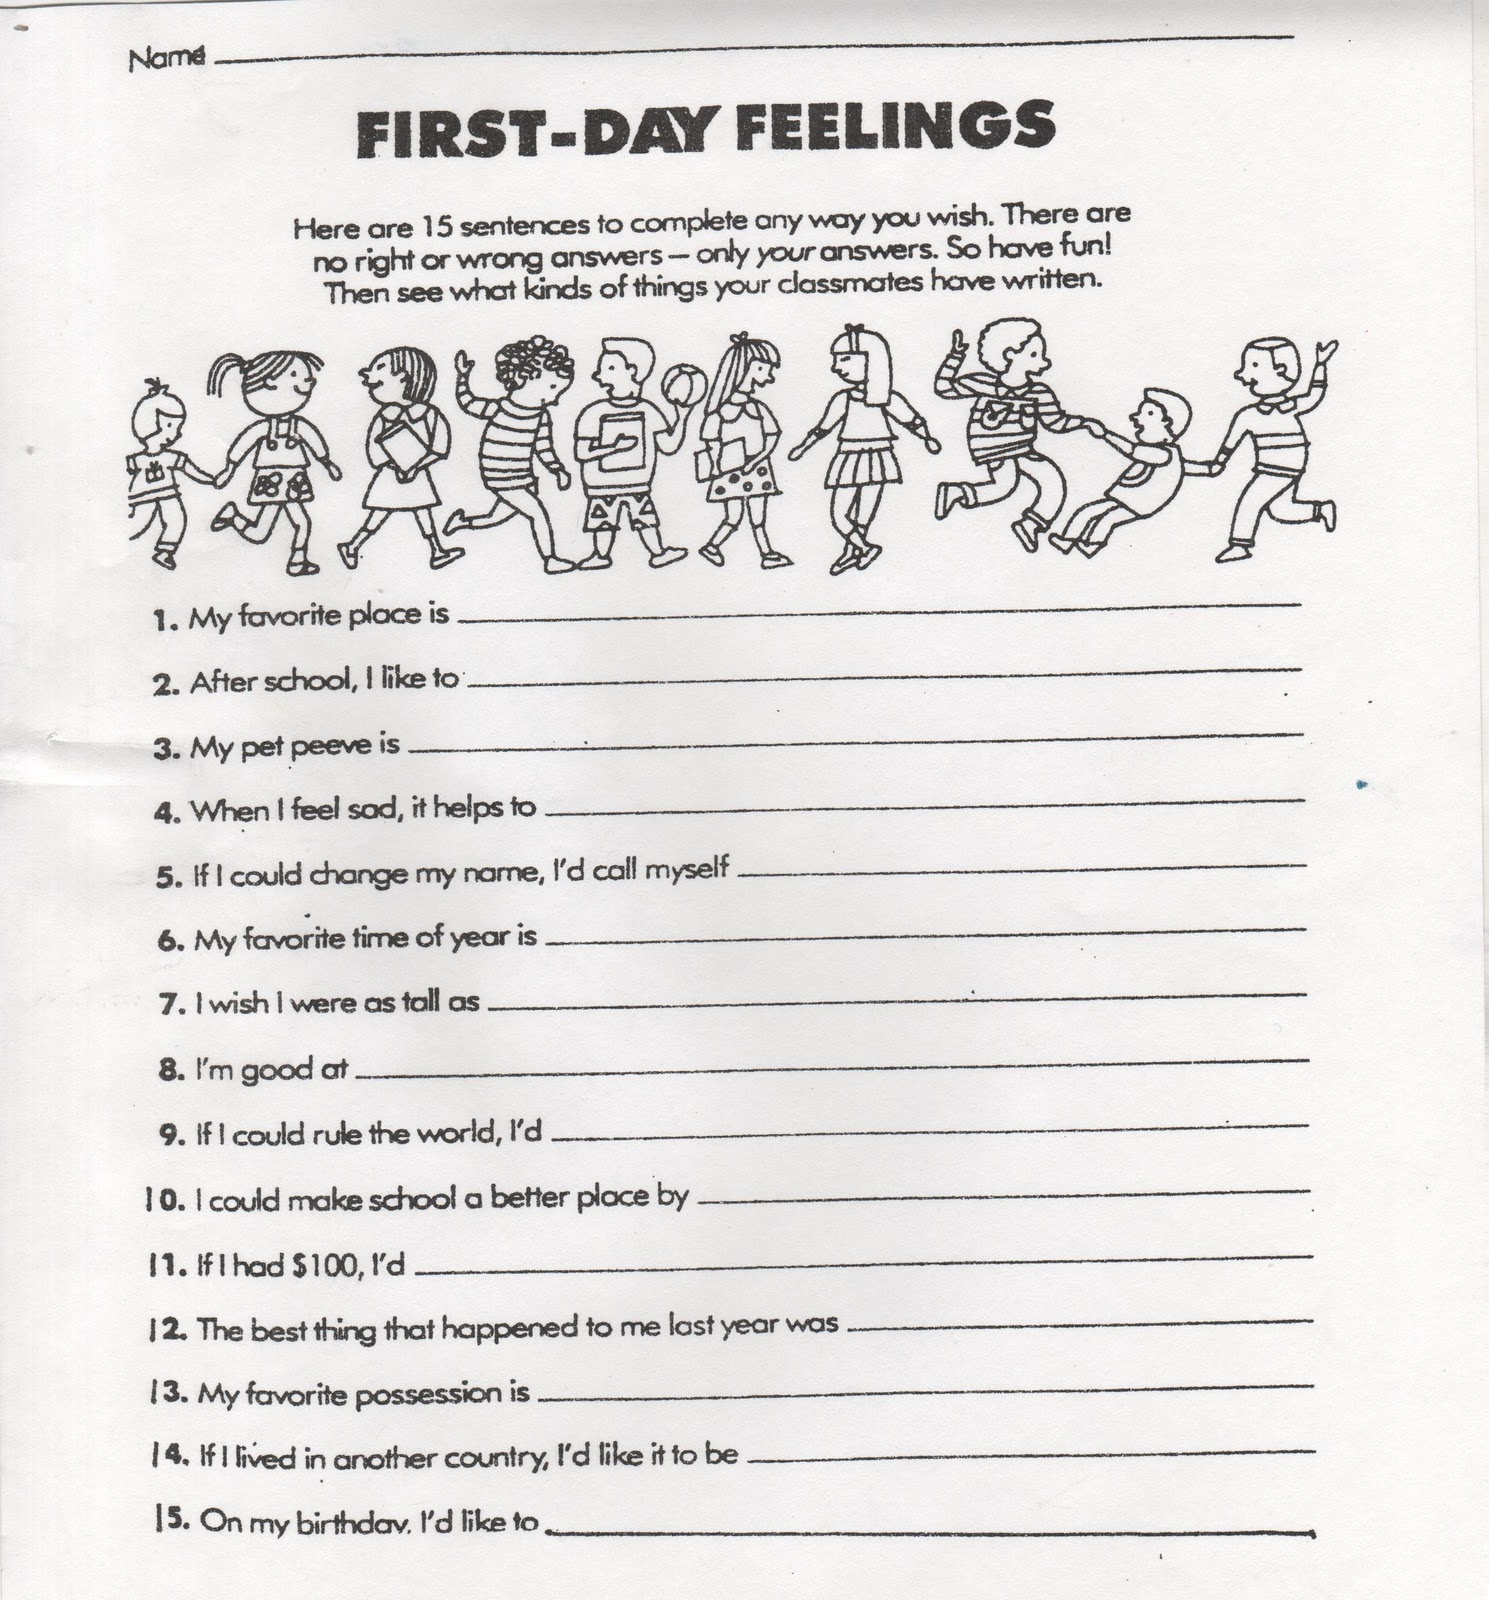 your decide activity essay It's never to early to start thinking about your future and what you want to do we  have tips on how to decide what you want to do, what degree you might be   imagine an activity you would be happy to do every day, even if you weren't  getting.